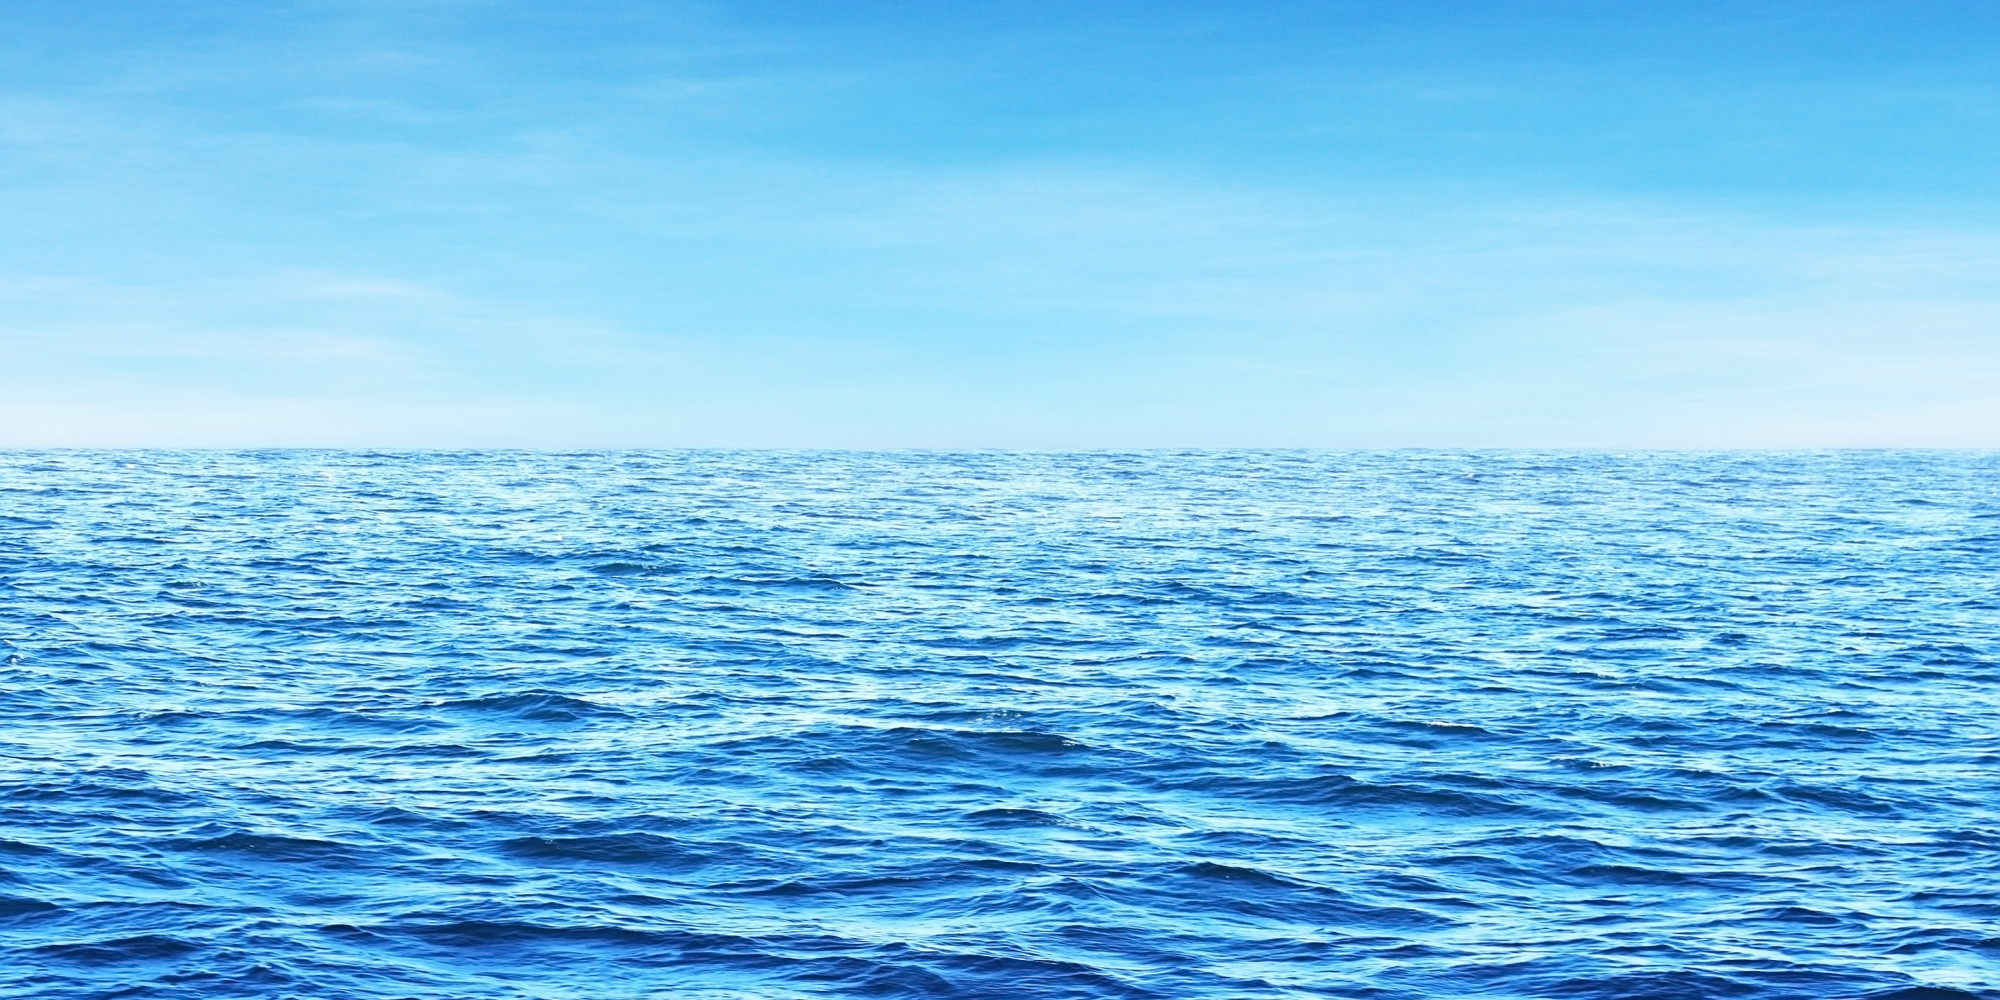 Ocean  definition of ocean by The Free Dictionary